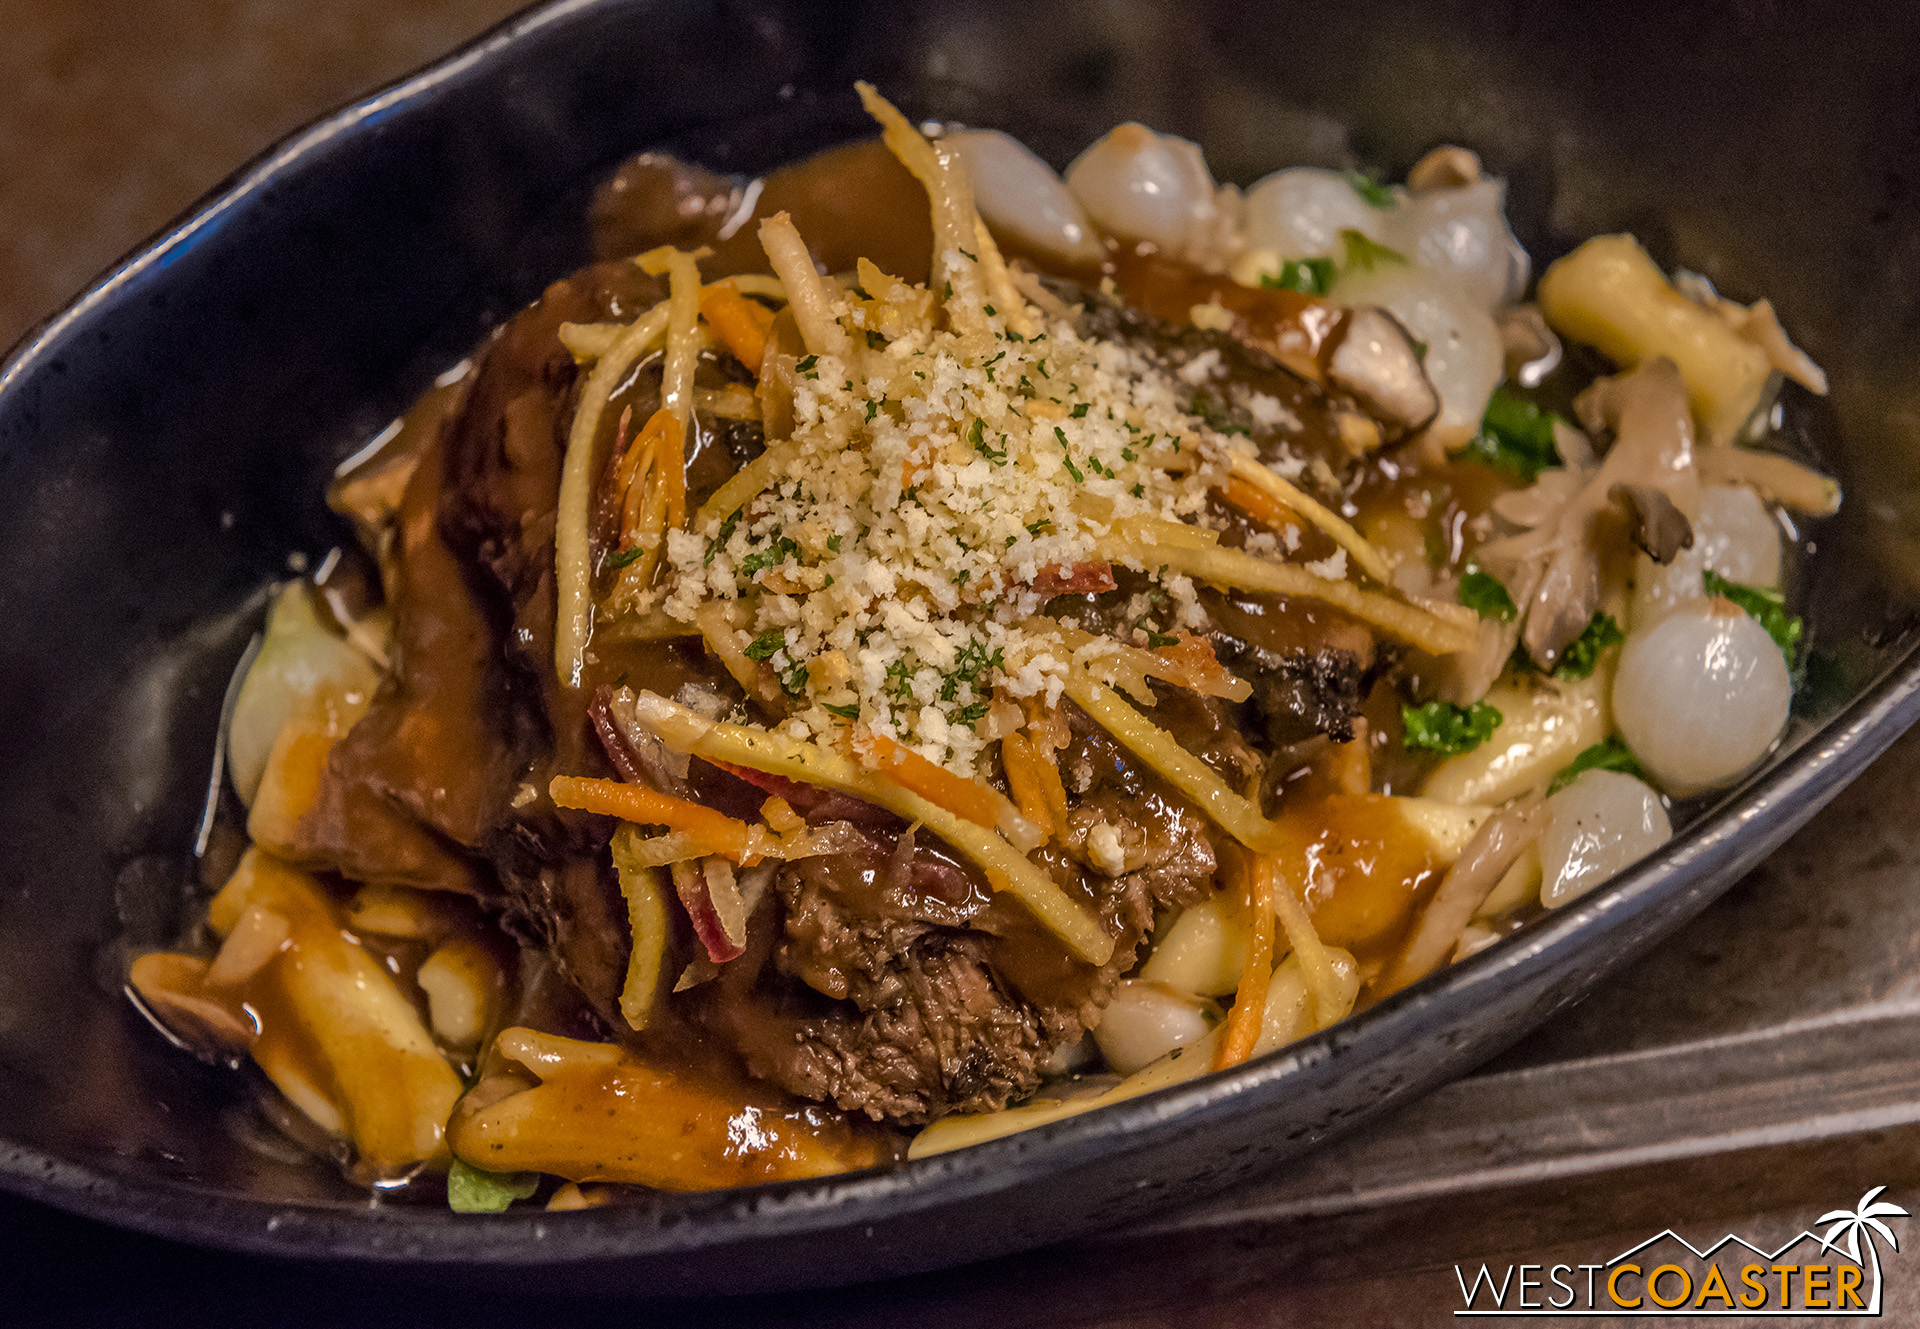 The Braised Shaak Roast is probably the most traditional of items offered here. The meat is plenty tender and very deeply flavorful.